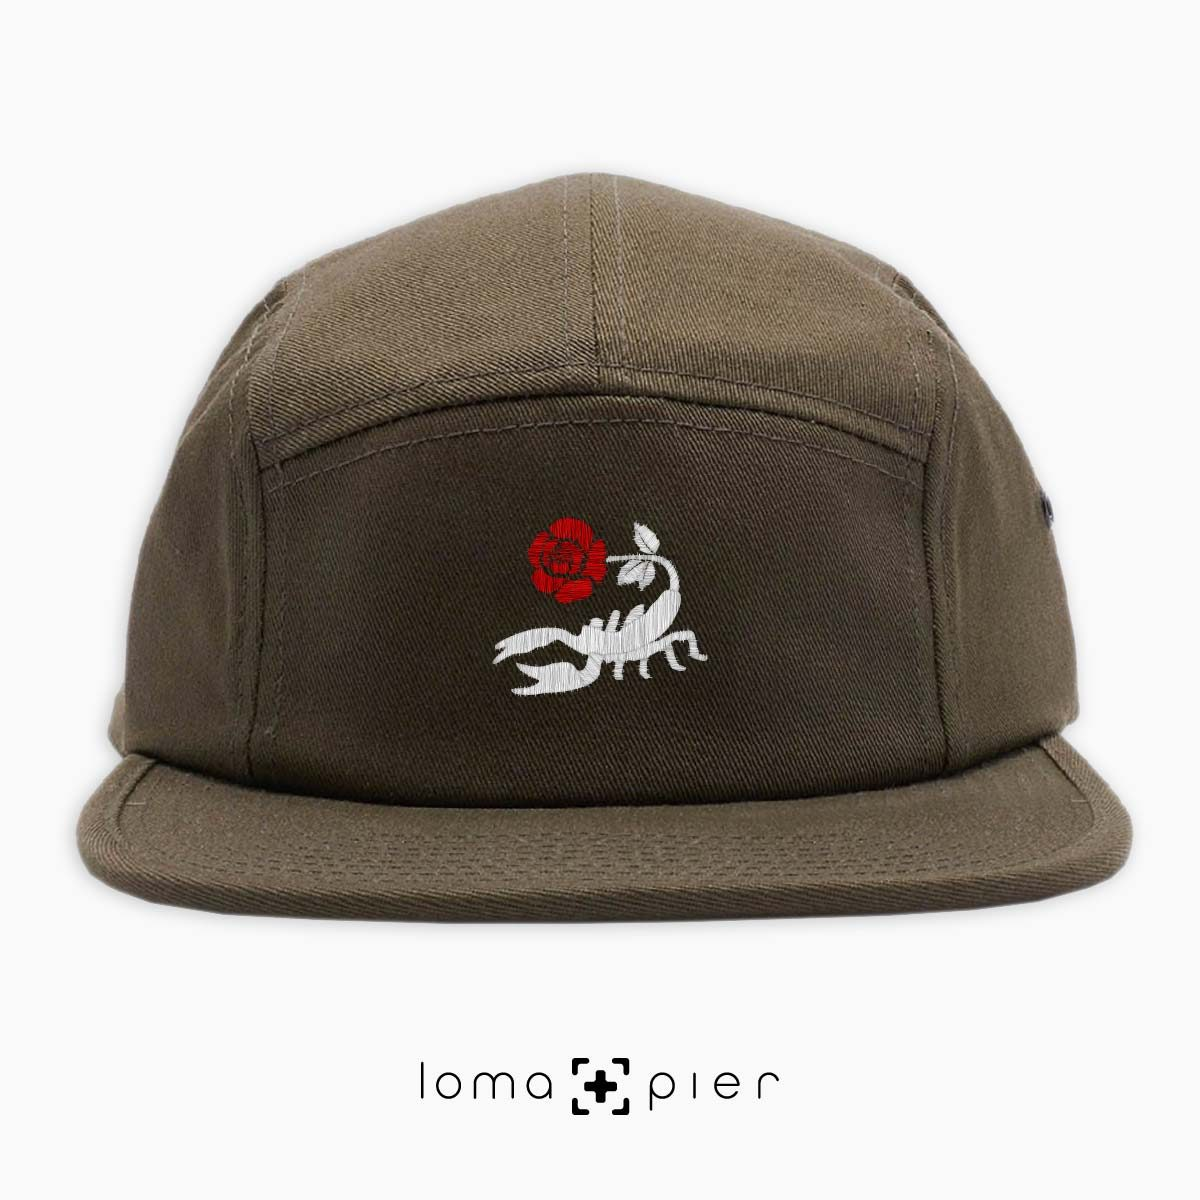 SCORPION ROSE icon embroidered on an olive green cotton 5-panel hat with multicolor thread in the loma+pier hat store